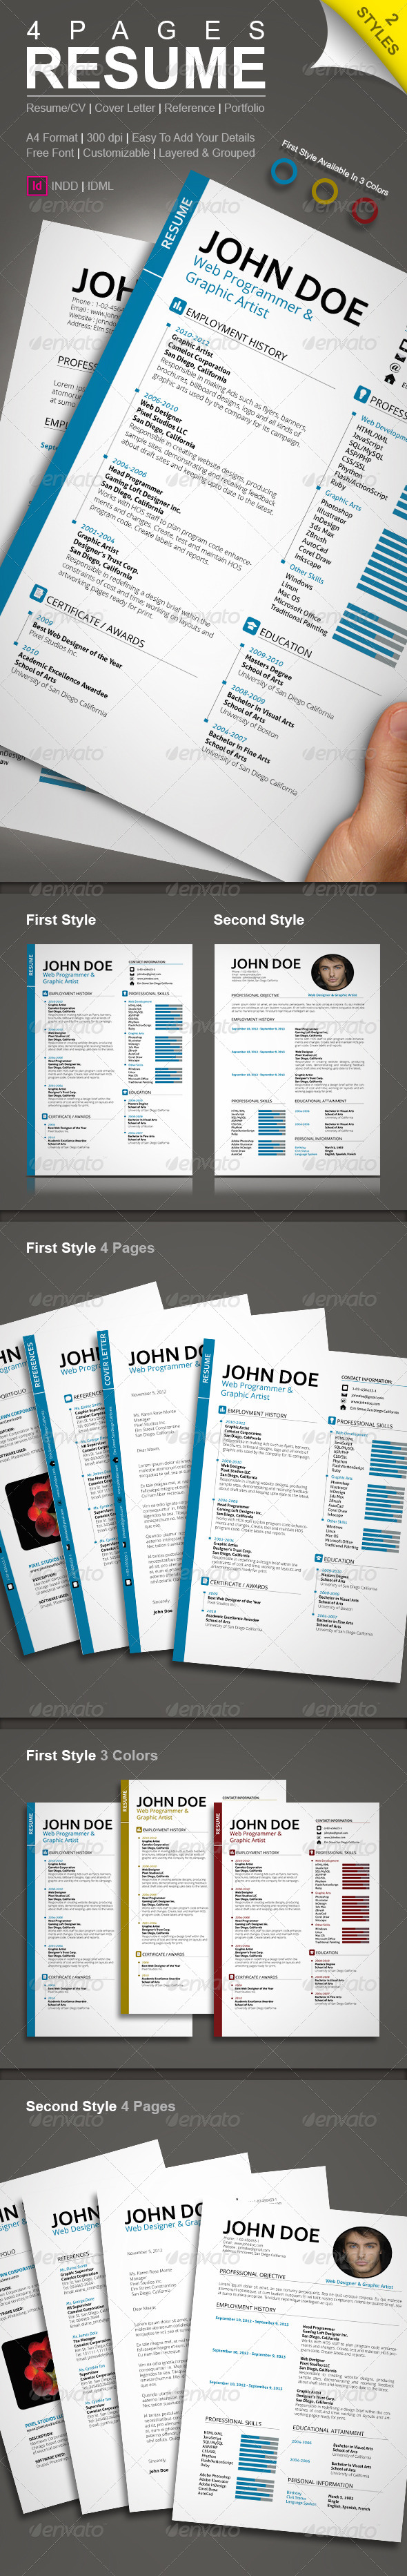 GraphicRiver Resume with Two Styles 6451807